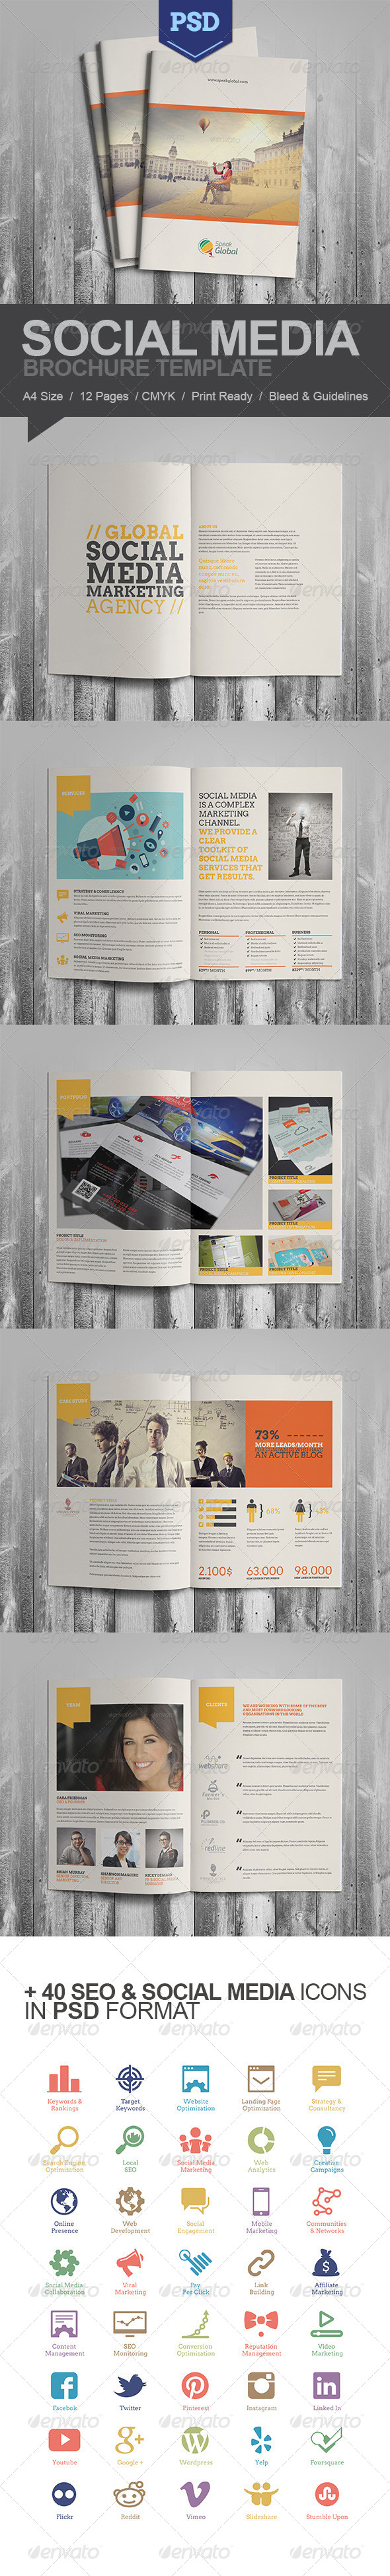 GraphicRiver Social Media A4 Brochure 6386288